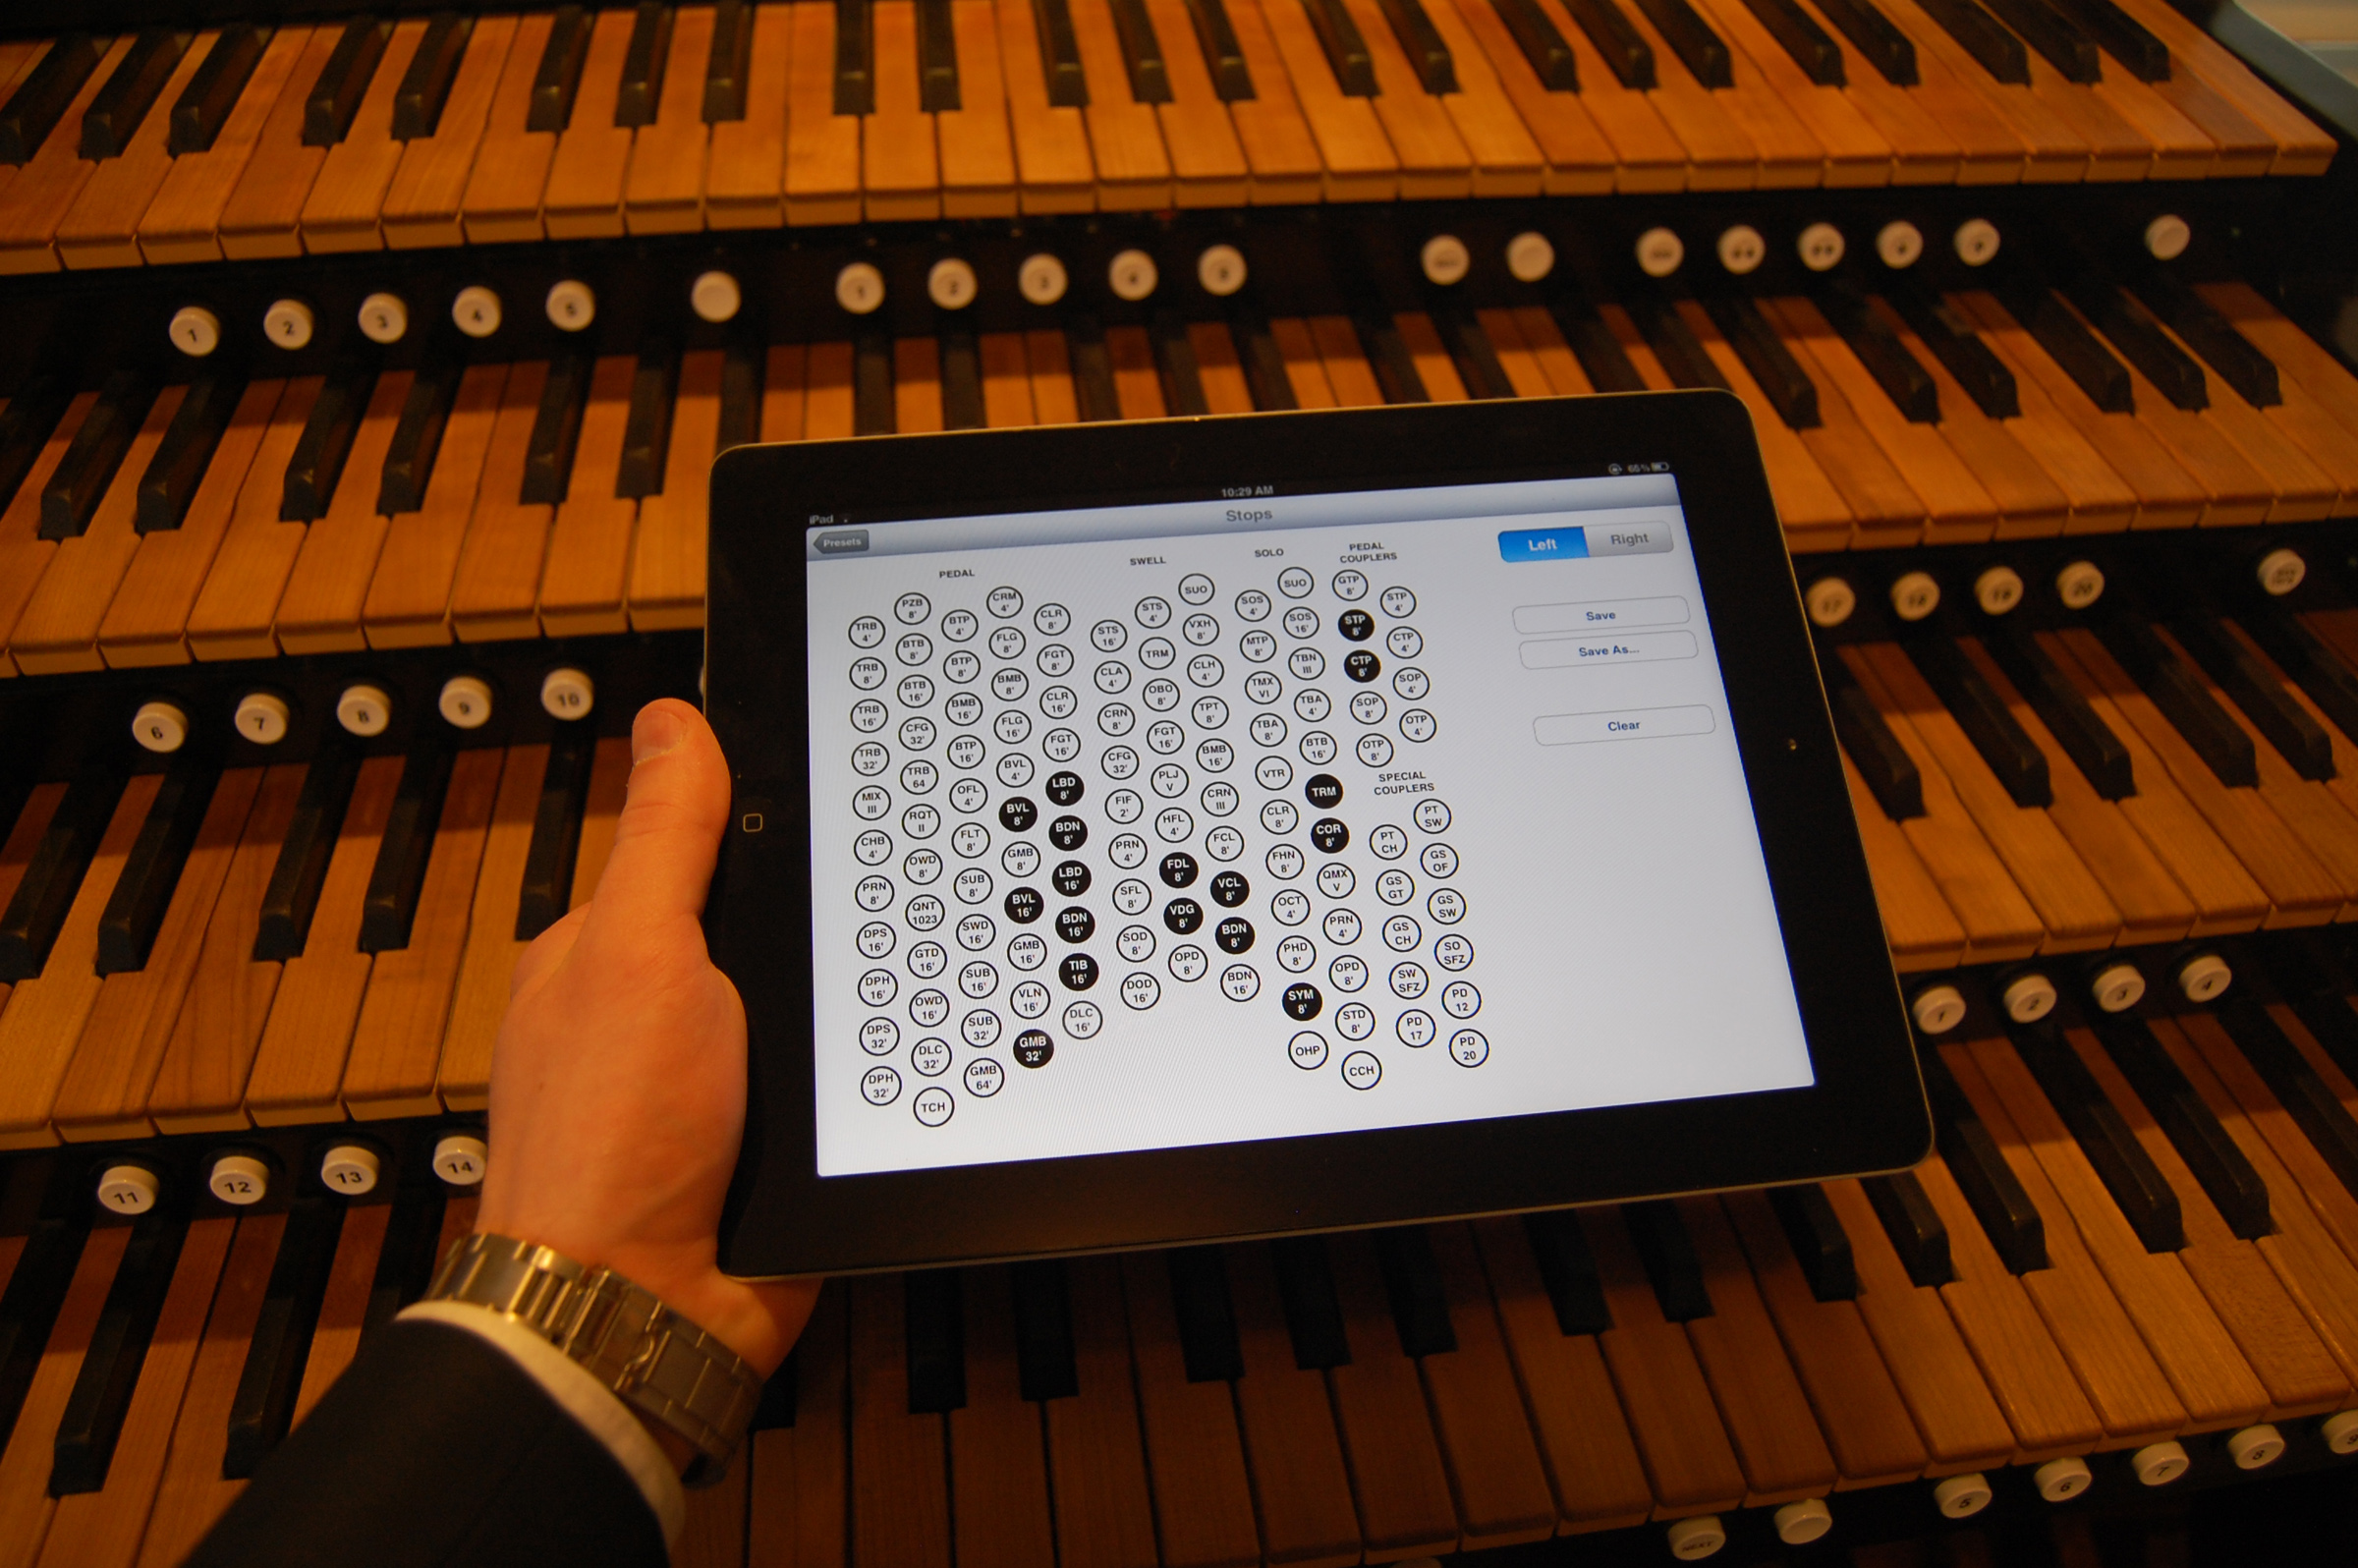 """University of Utah computer science student Rob Stefanussen holds an iPad displaying an """"app"""" he developed to record the settings on church pipe organs. It is among about 30 apps developed by students in a class on iPhone and iPad programming."""